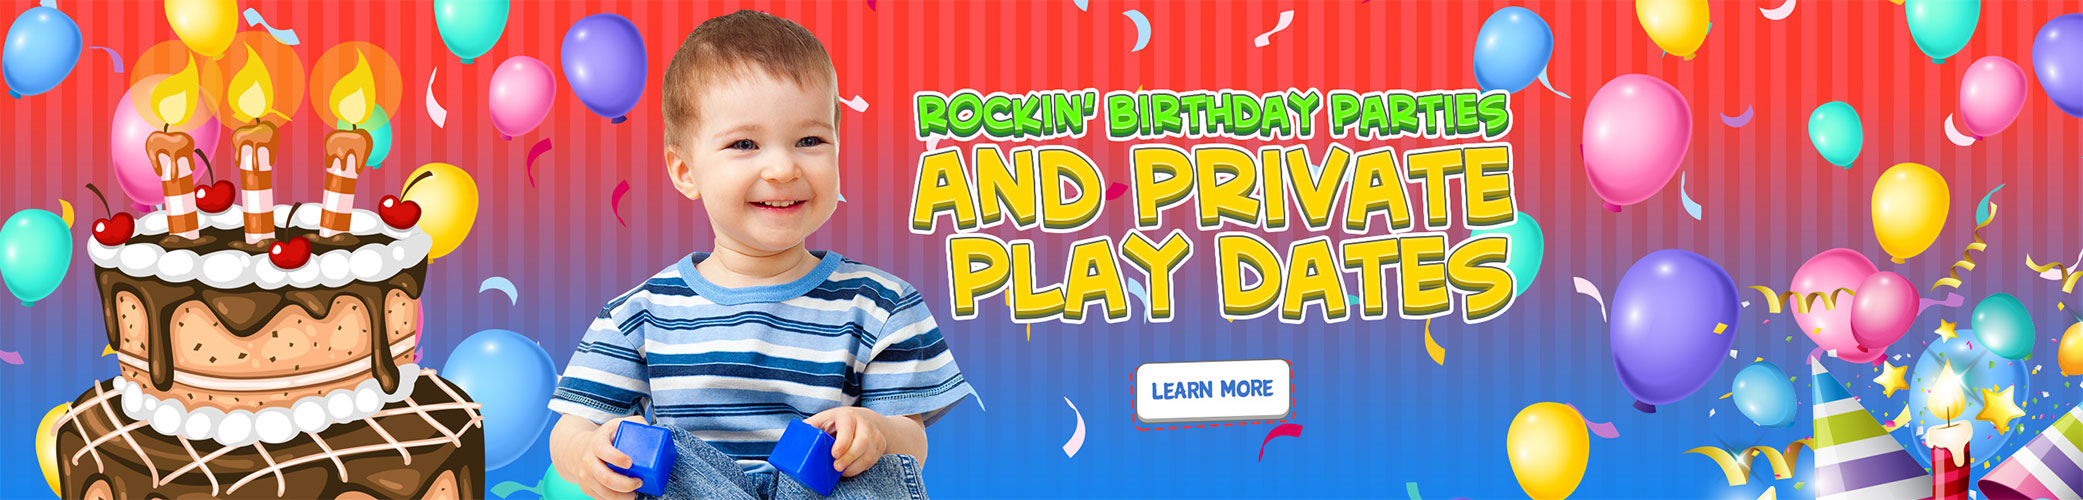 WRTS Edwardsville/ Celebrations/ Private Play Dates/ Birthday Parties